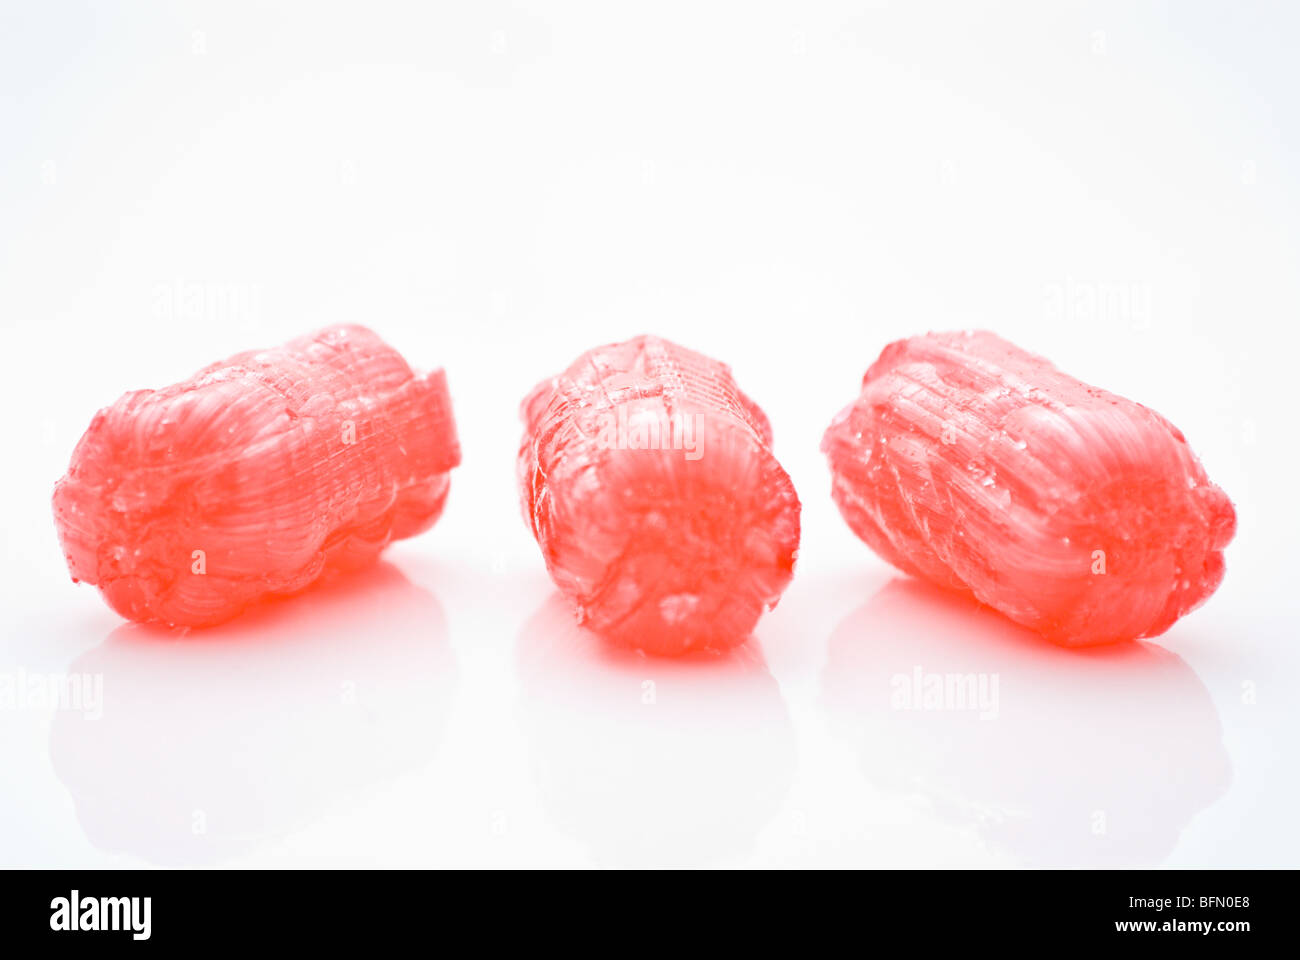 Red sweets on white background with reflection - Stock Image